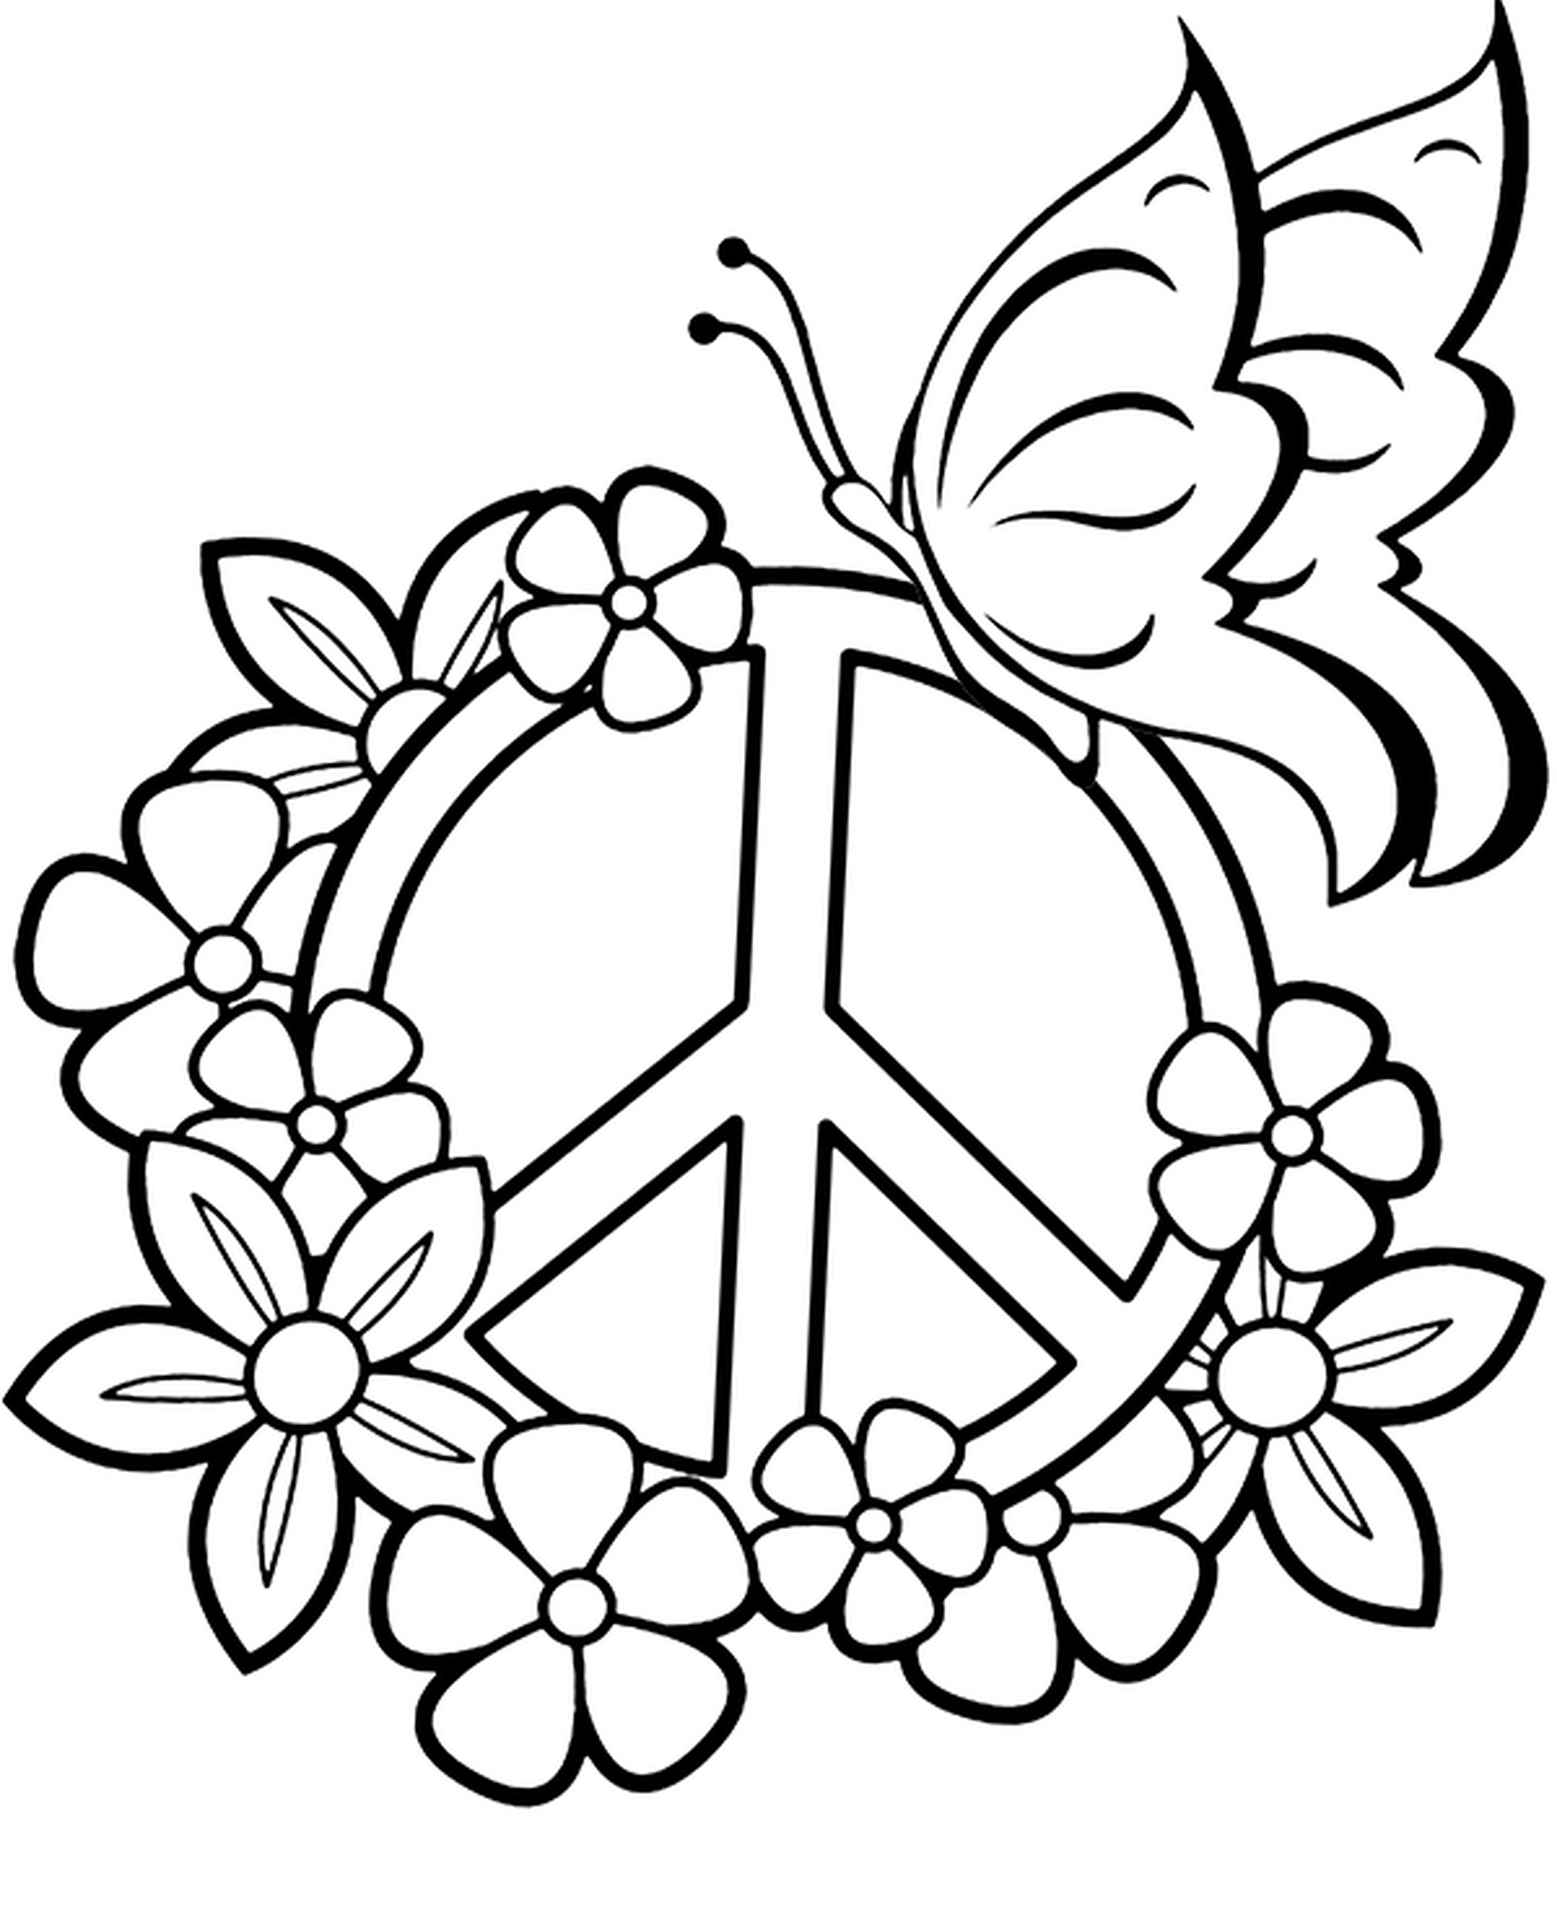 Coloring Page Of A Symbol Of Peace Braided With Flowers Next To A Butterfly